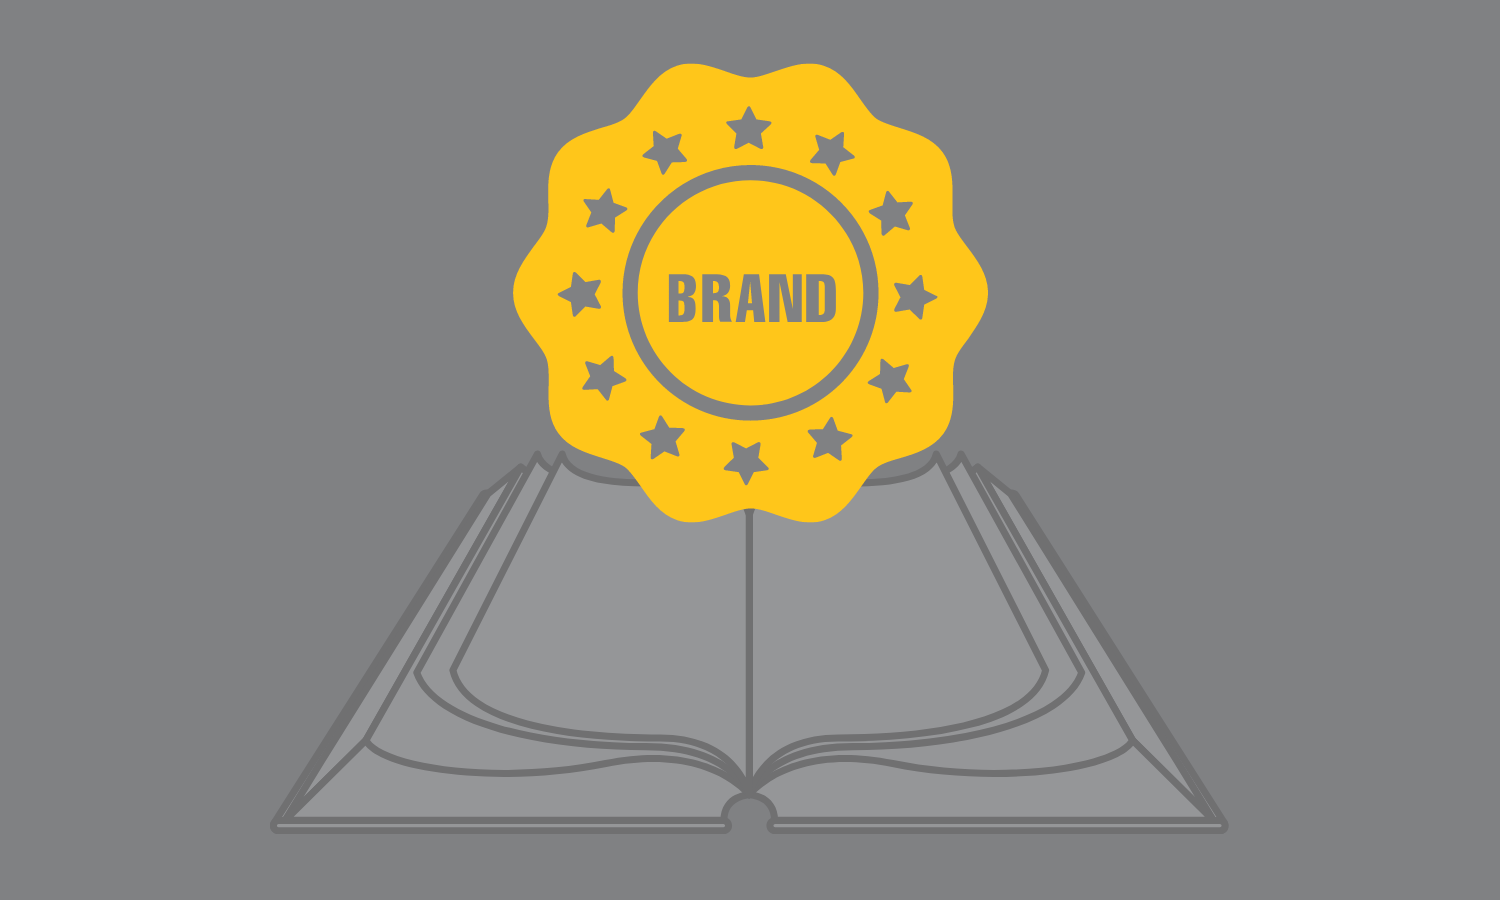 open book with the word brand coming off the page. brand is surrounded by stars.